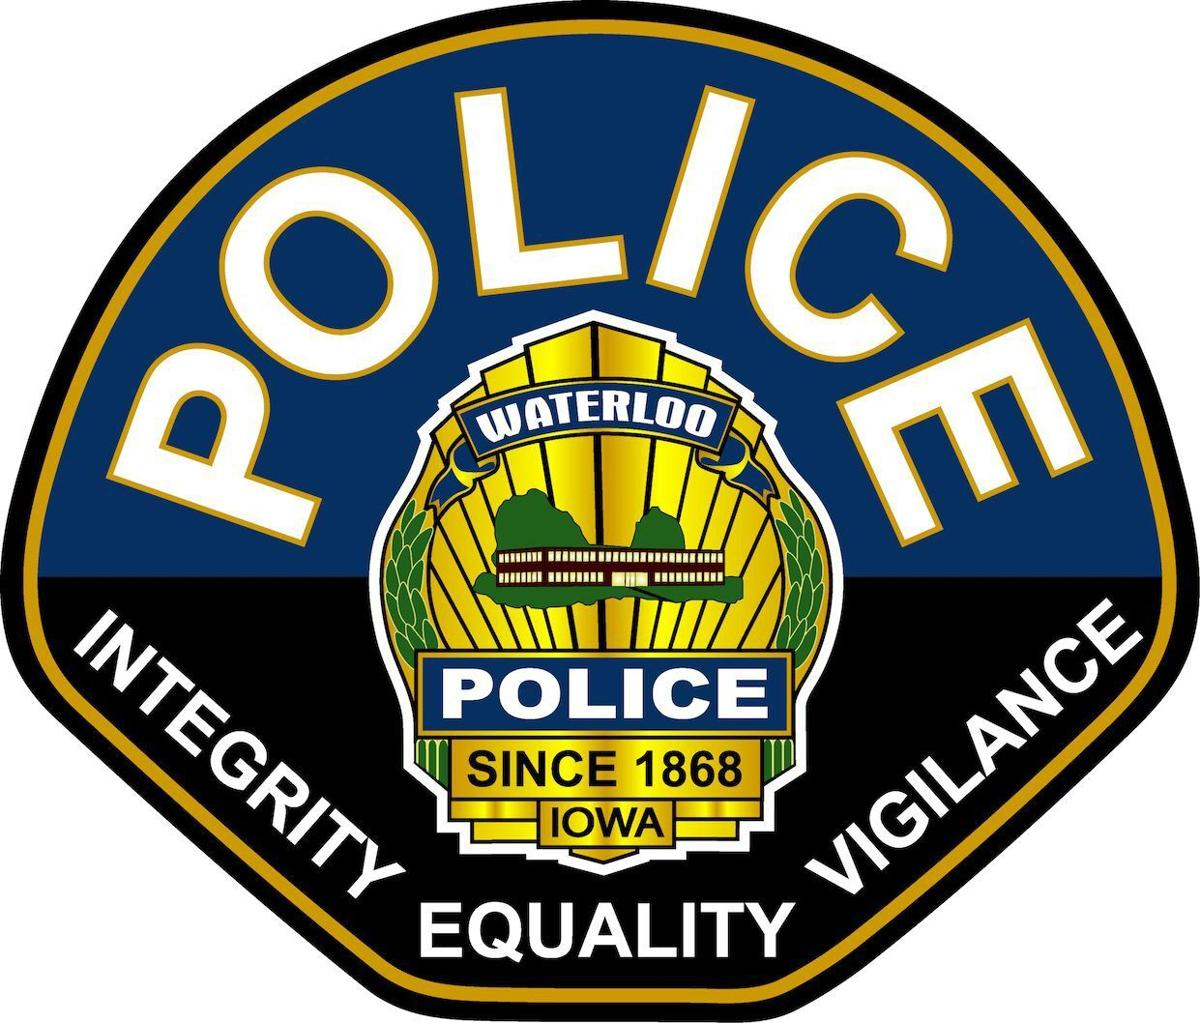 Police logo submission 2